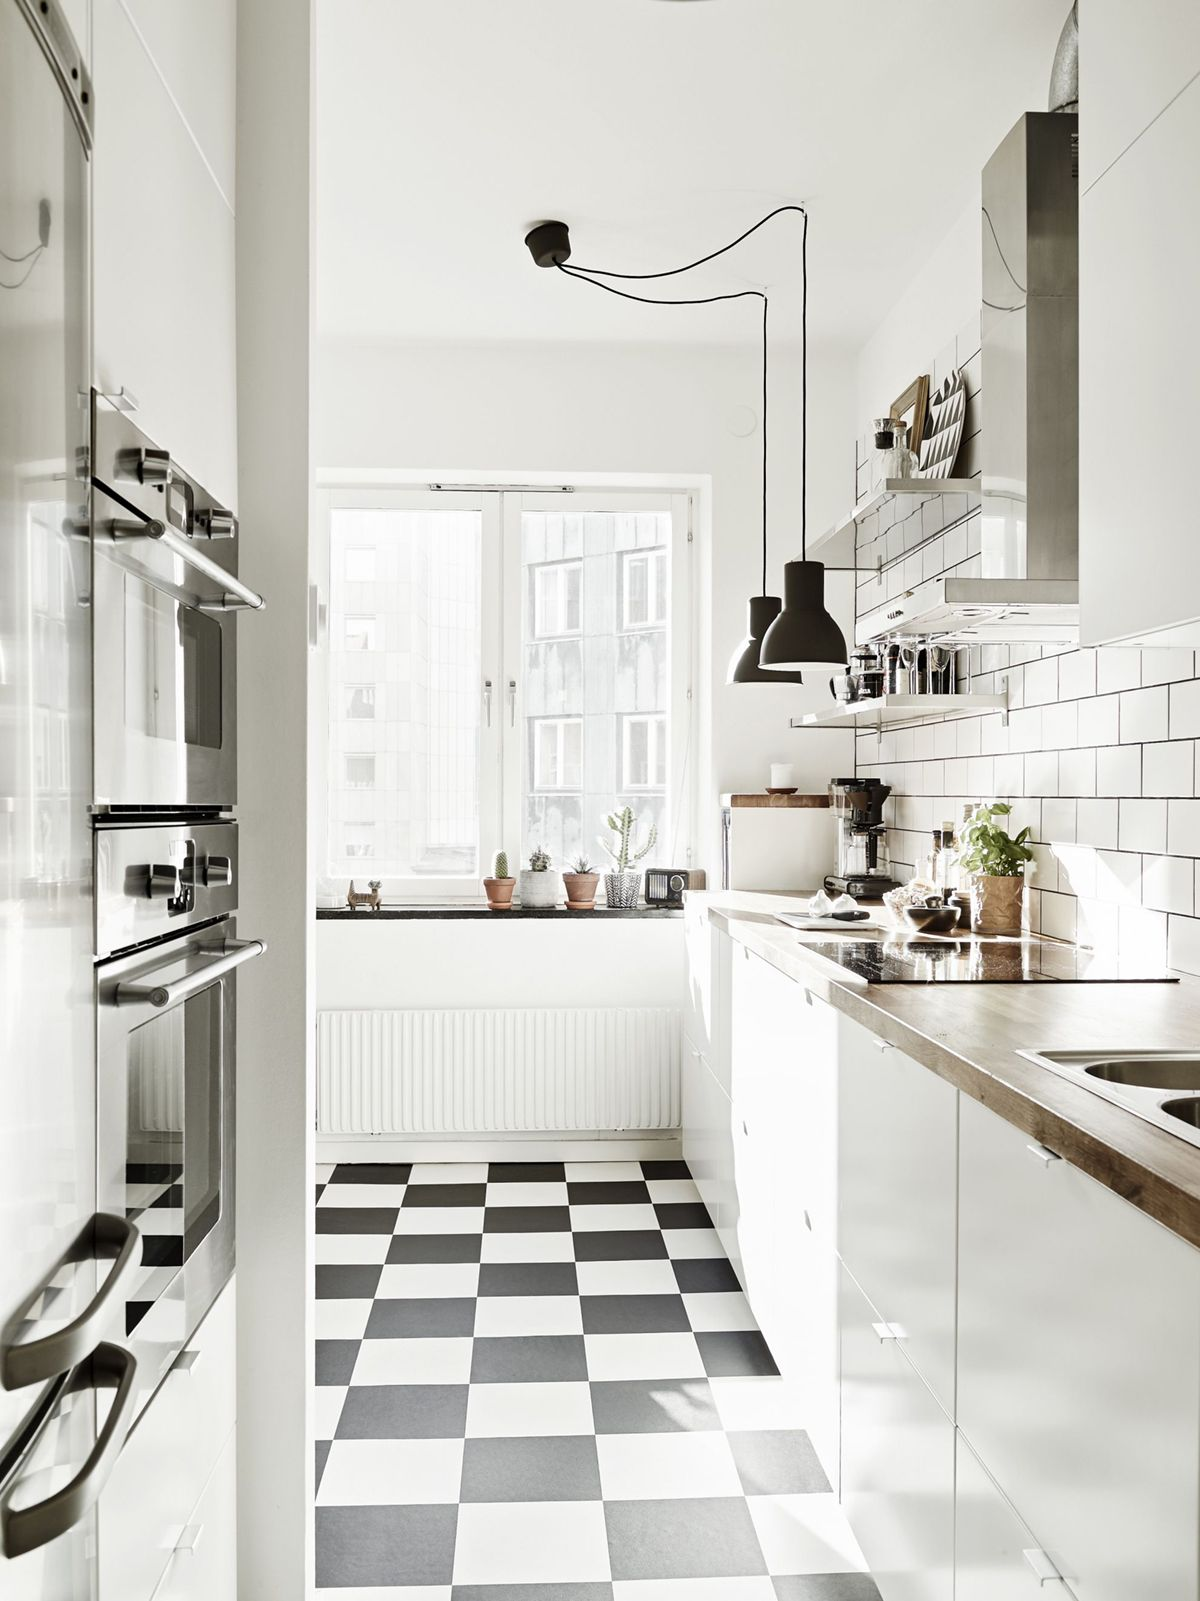 Should We Do Black White Checkerboard Floors In Our Basement